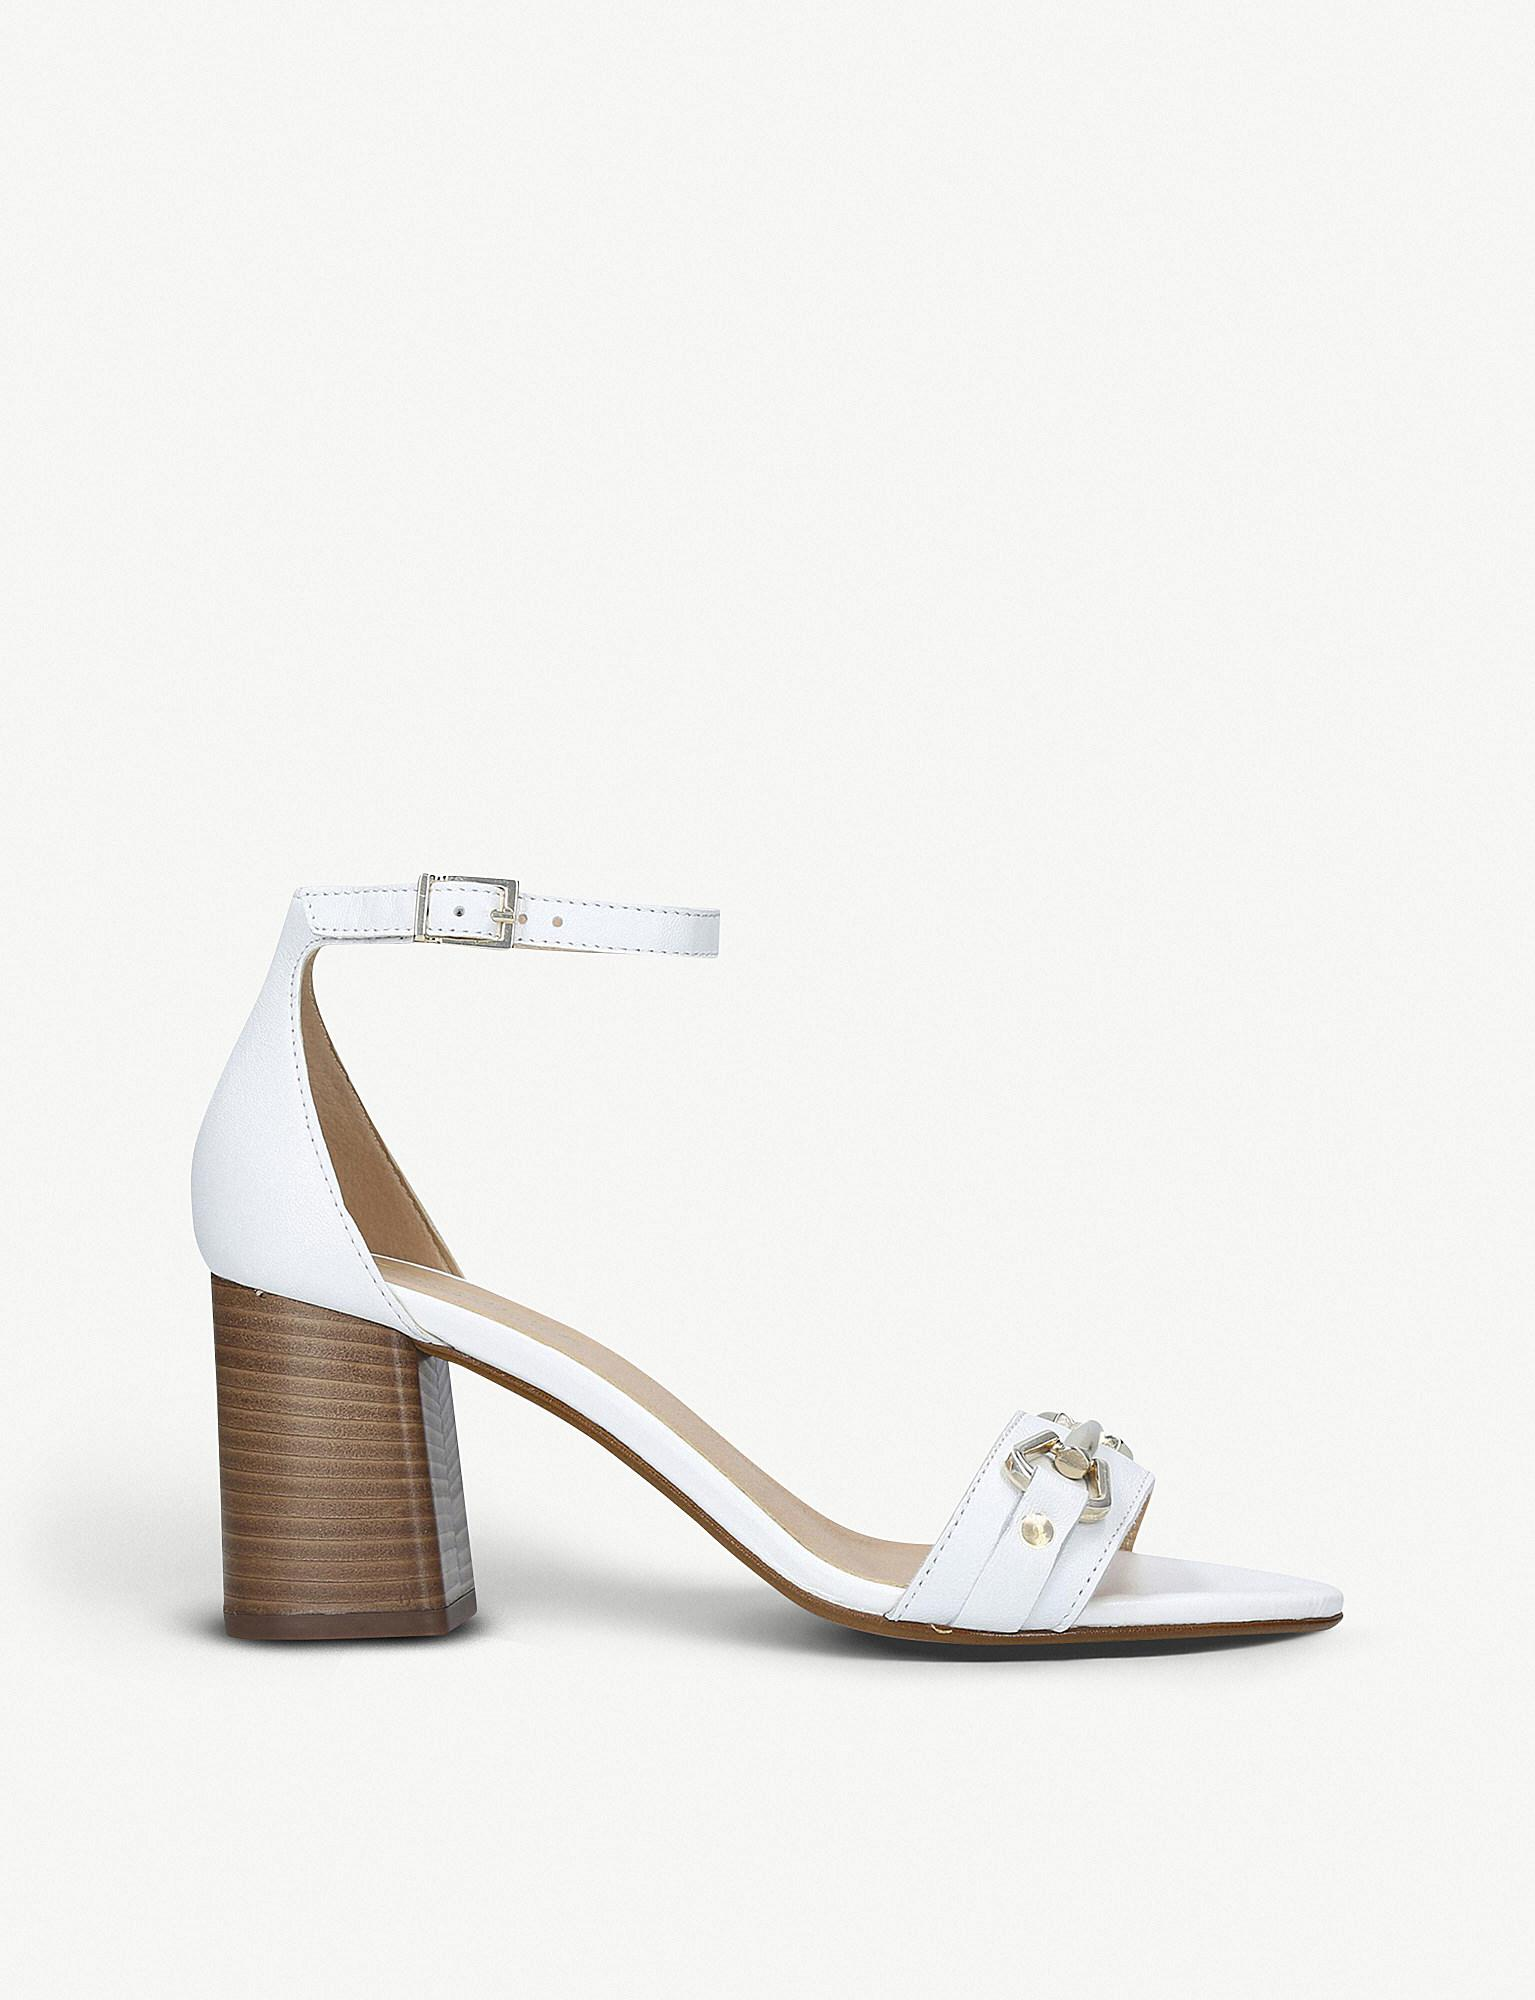 9d22fc59009 Lyst - Carvela Kurt Geiger Kast Leather Stacked Heel Sandals in White